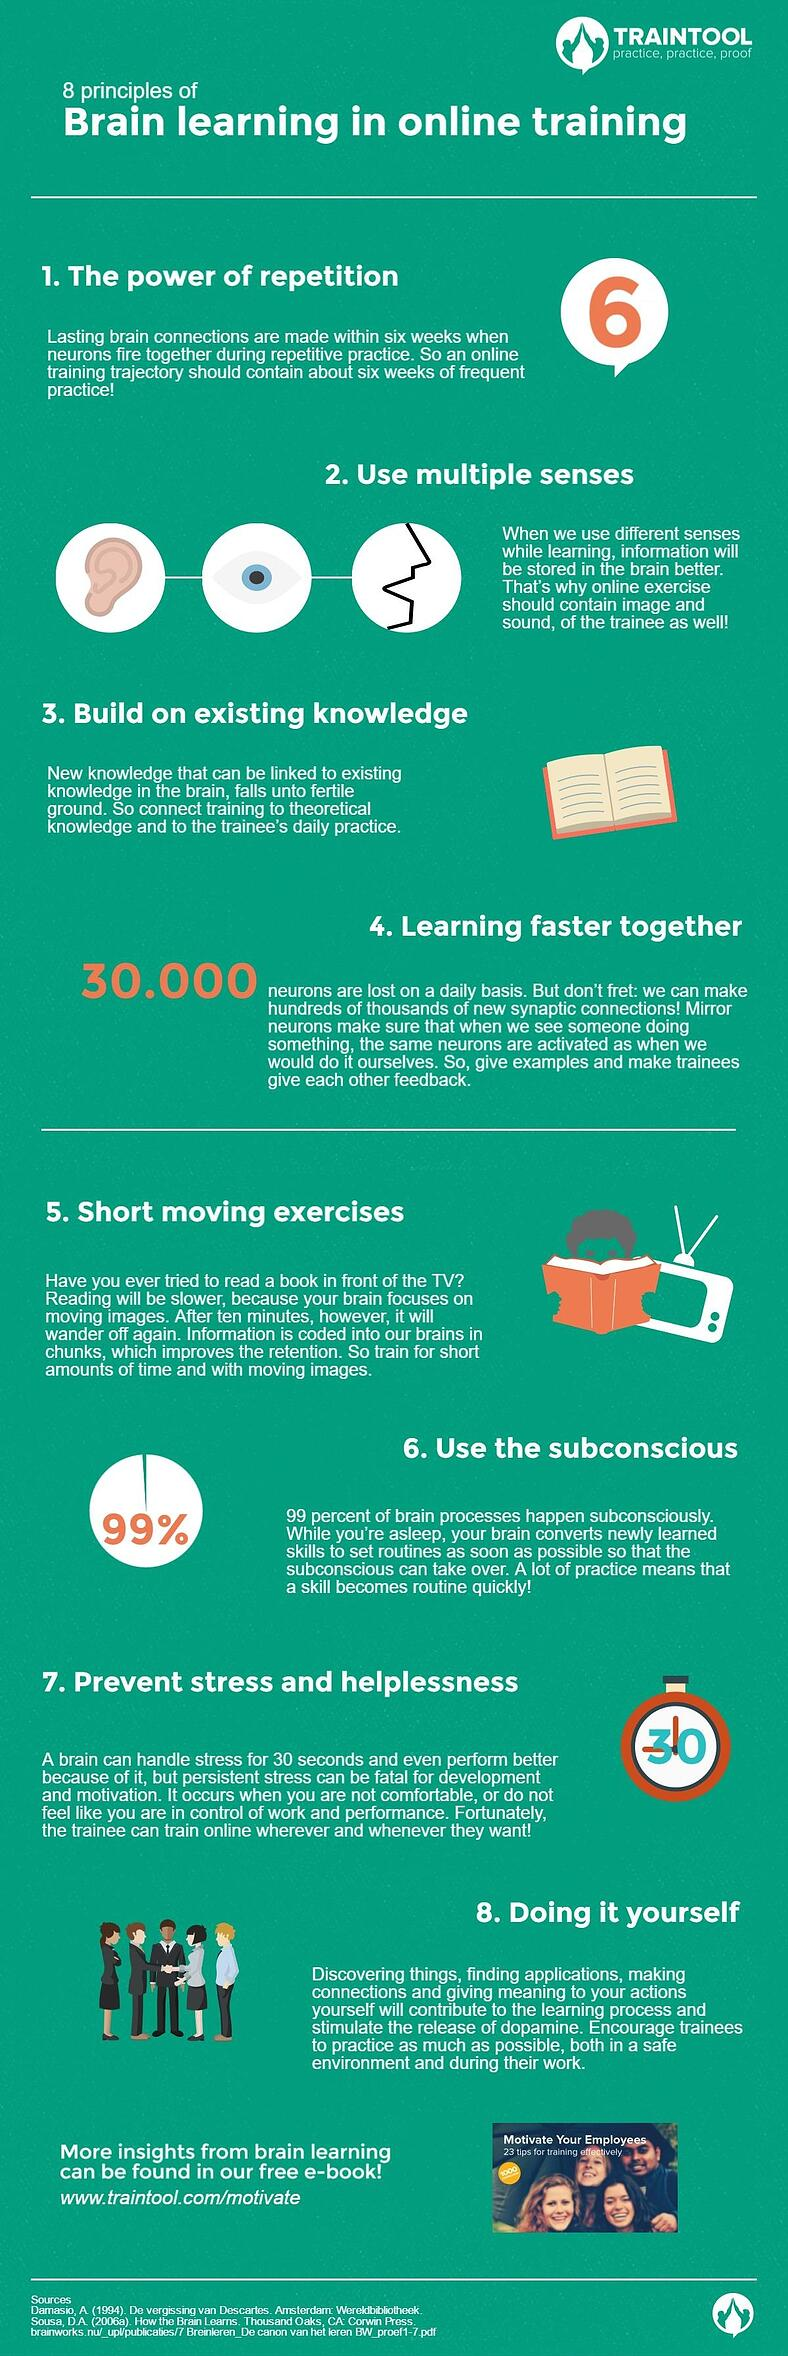 8 Principles Of Brain Learning In Online Training Infographic Traintool